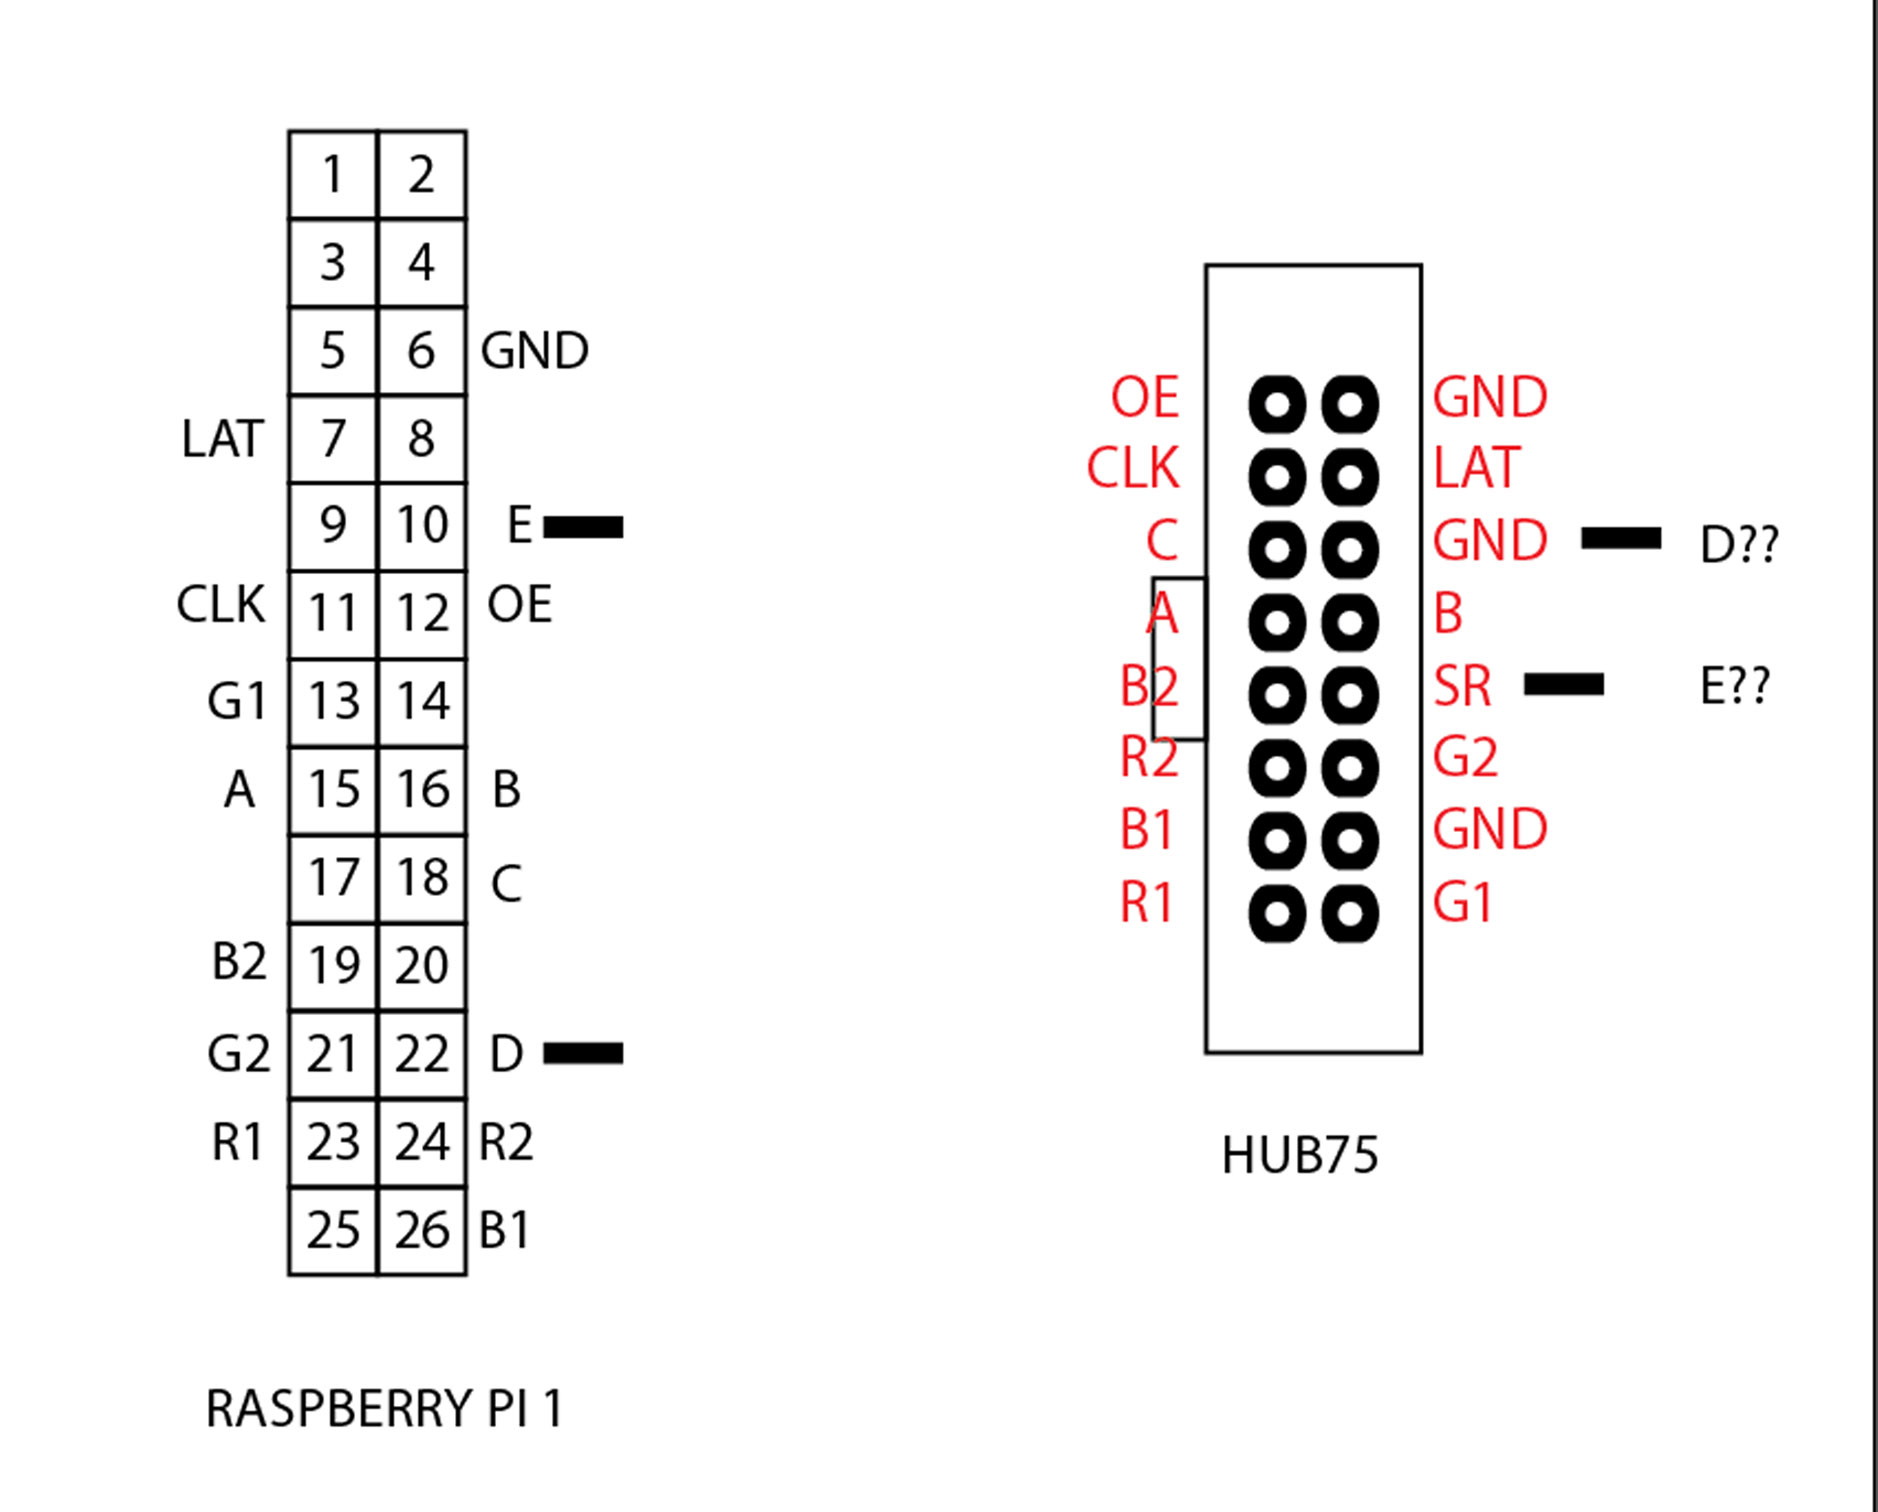 Need Help With 64x64 Module P3 9 Issue 715 Hzeller